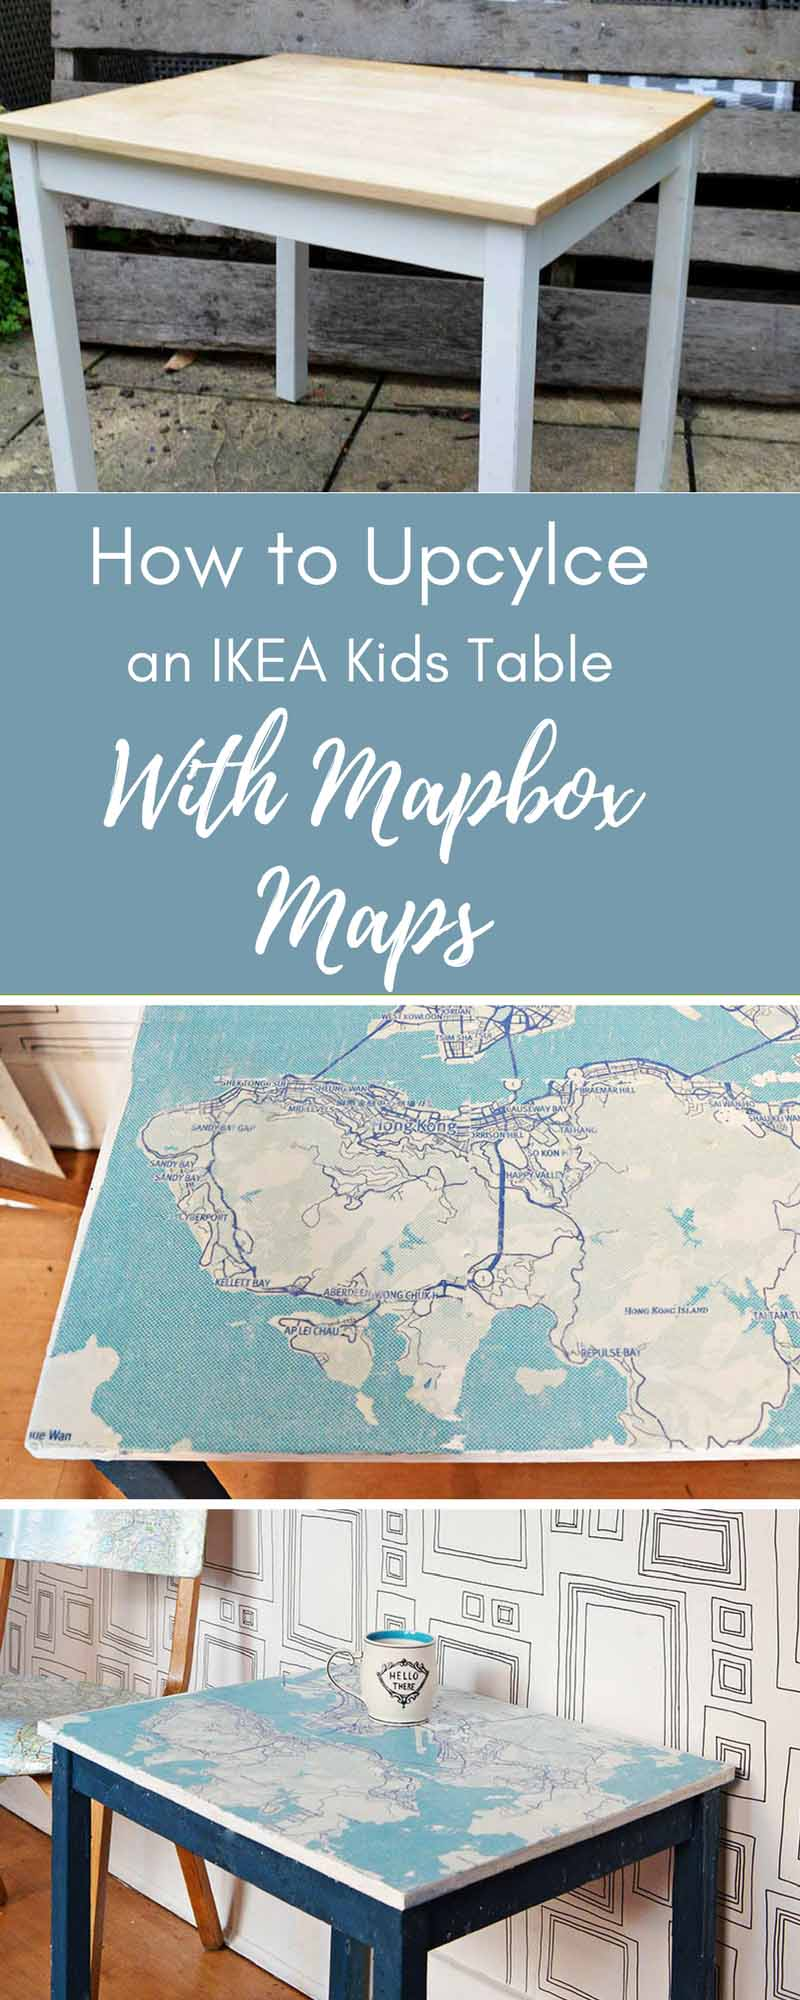 Upcycled IKEA kids table with mapbox maps